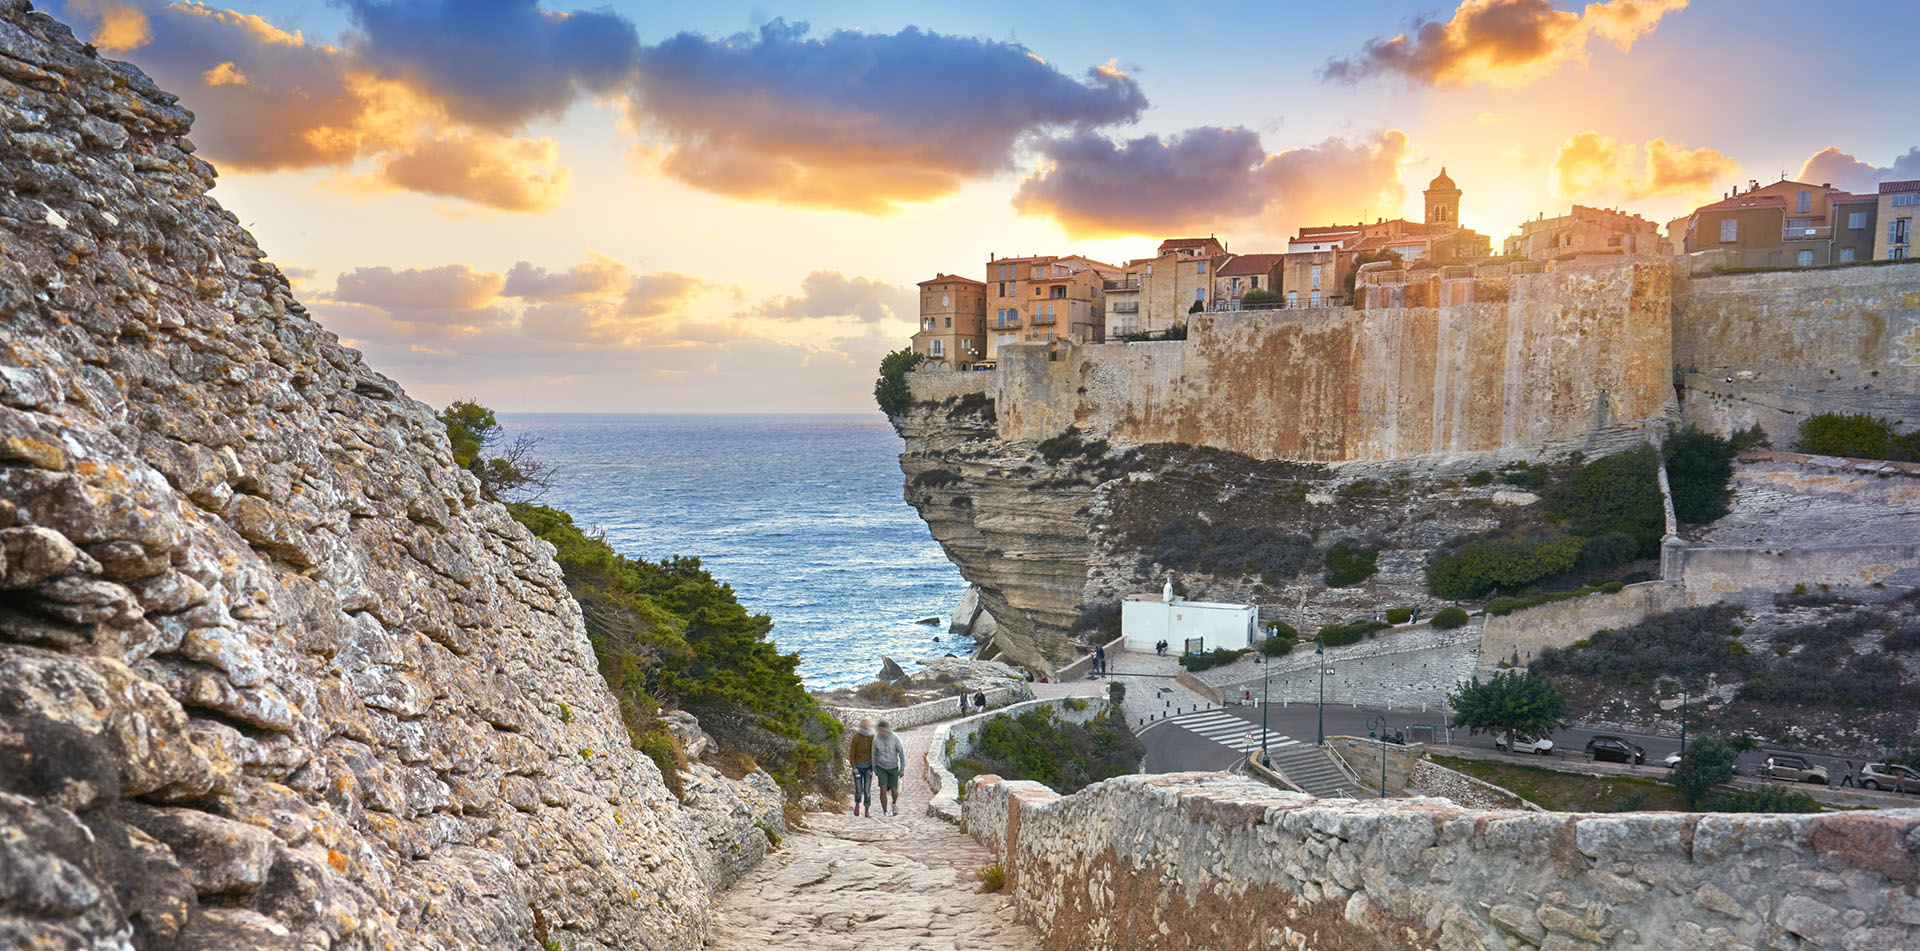 Europe Sardinia Corsica building on cliffside in Bonifacio at twilight - luxury vacation destinations